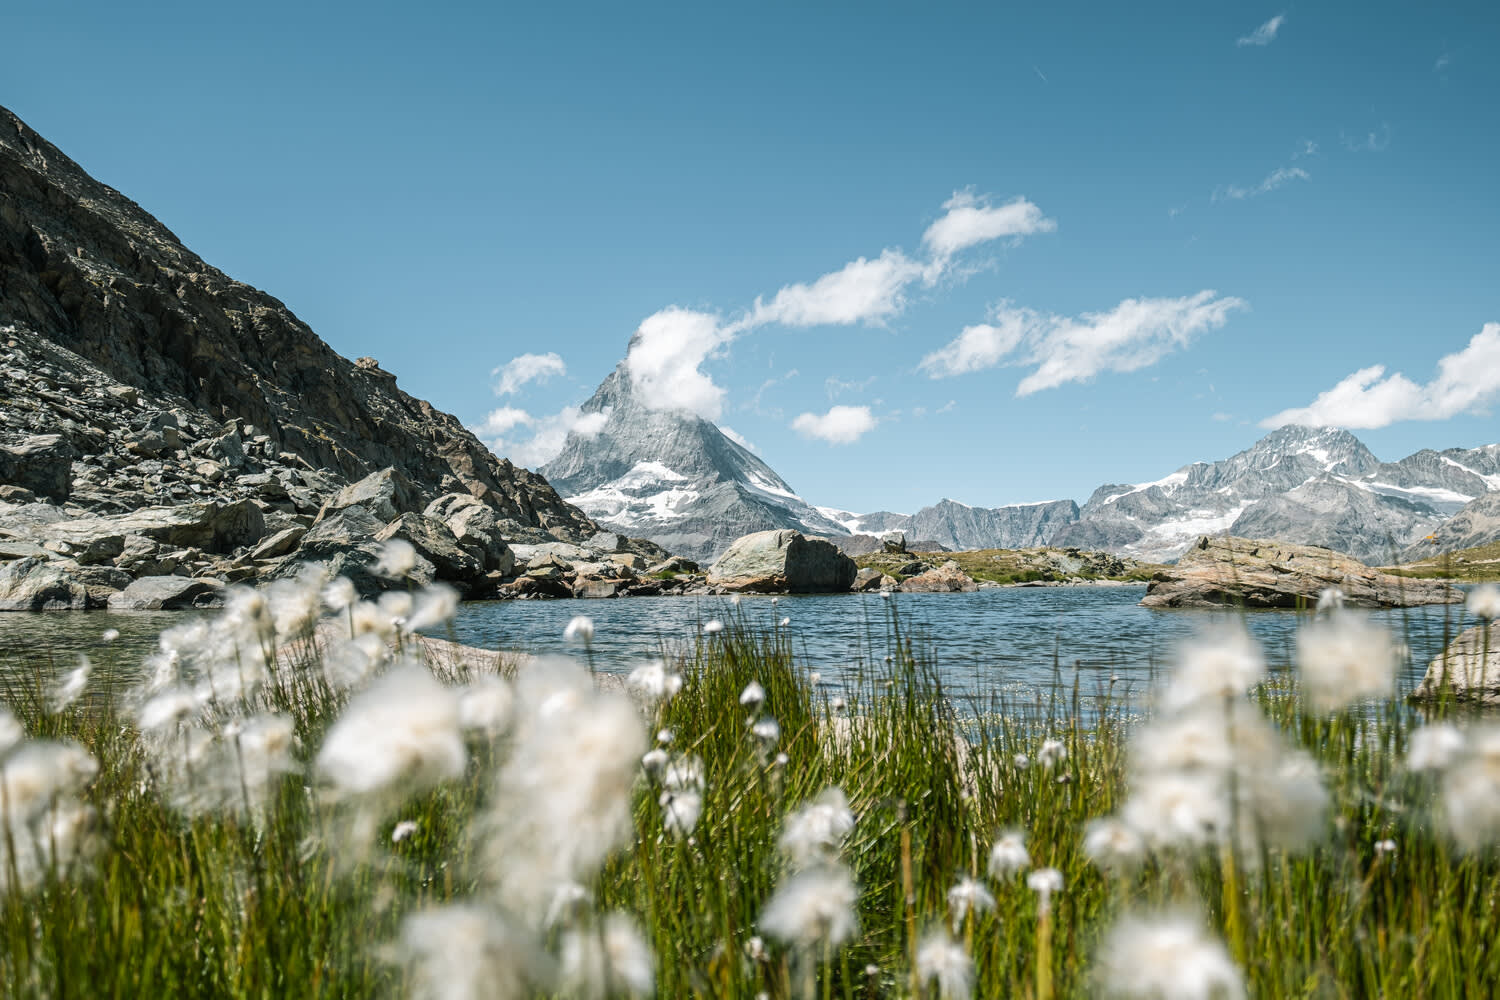 Cotton grass at Riffelsee Lake with Matterhorn in the background